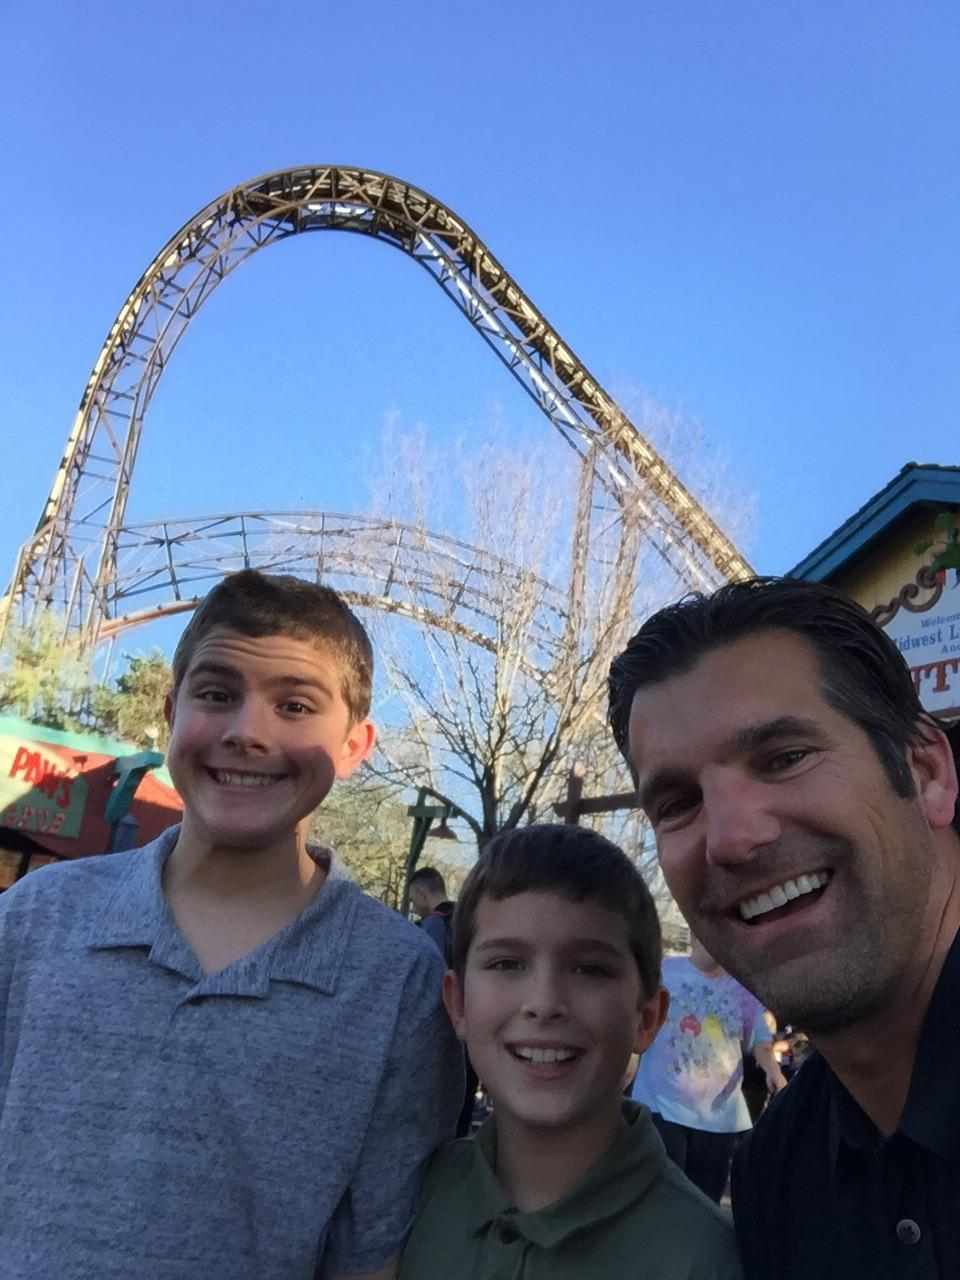 UPDATED! Brilliant Bonding Ideas for and from Dads of Autism